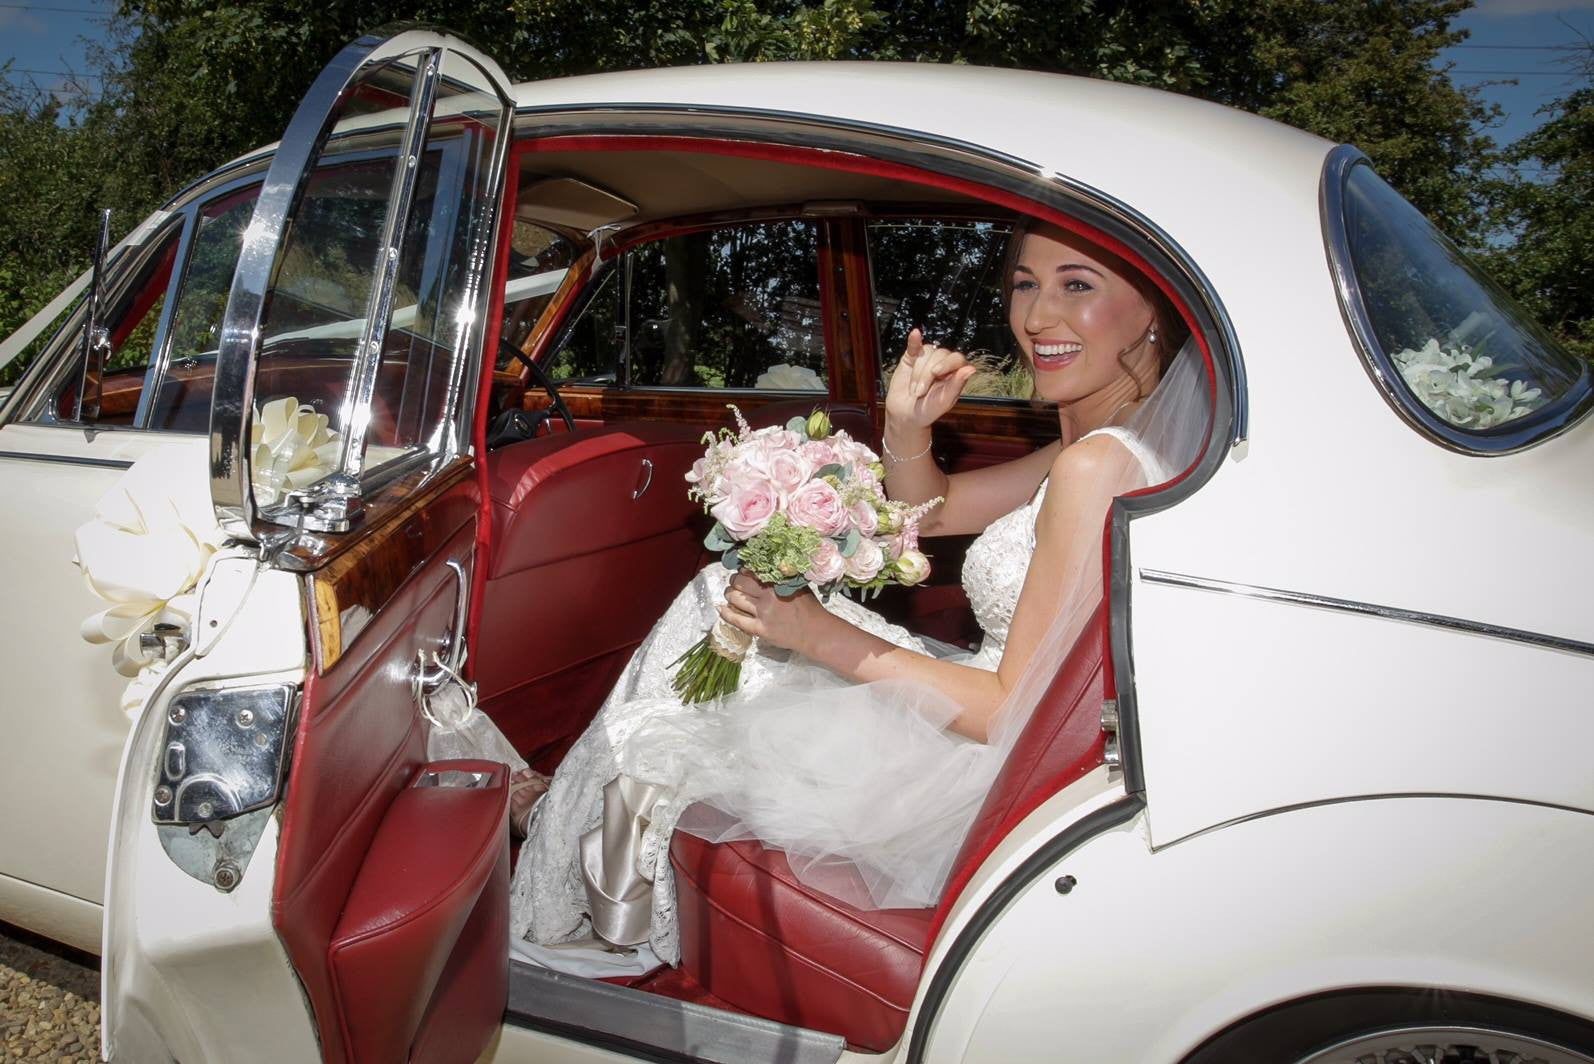 Bride with pink Rose bridal bouquet in the wedding car.